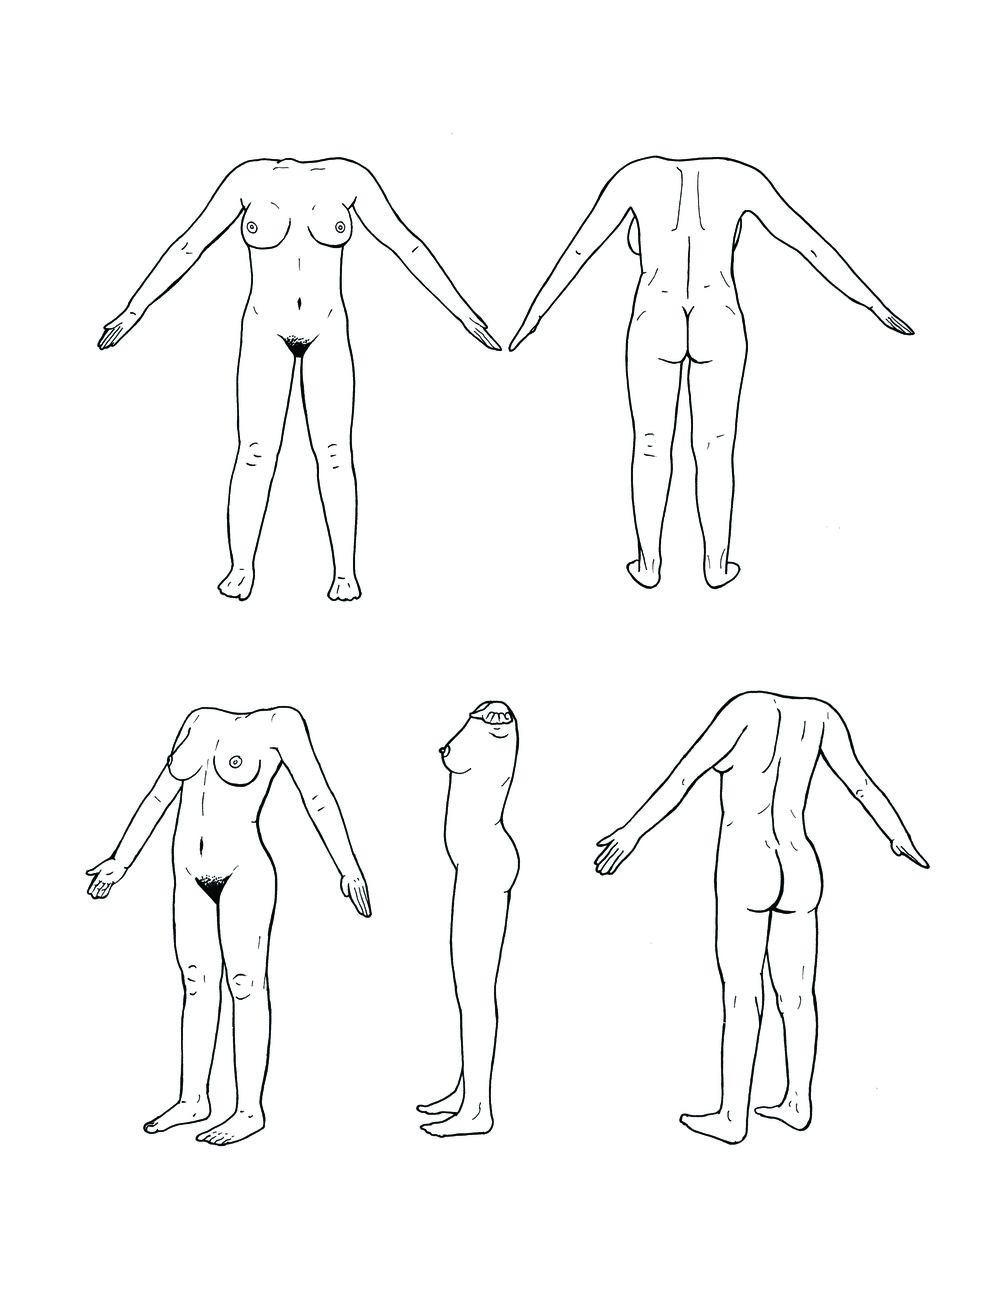 PROPORTIONS OF A HUMAN